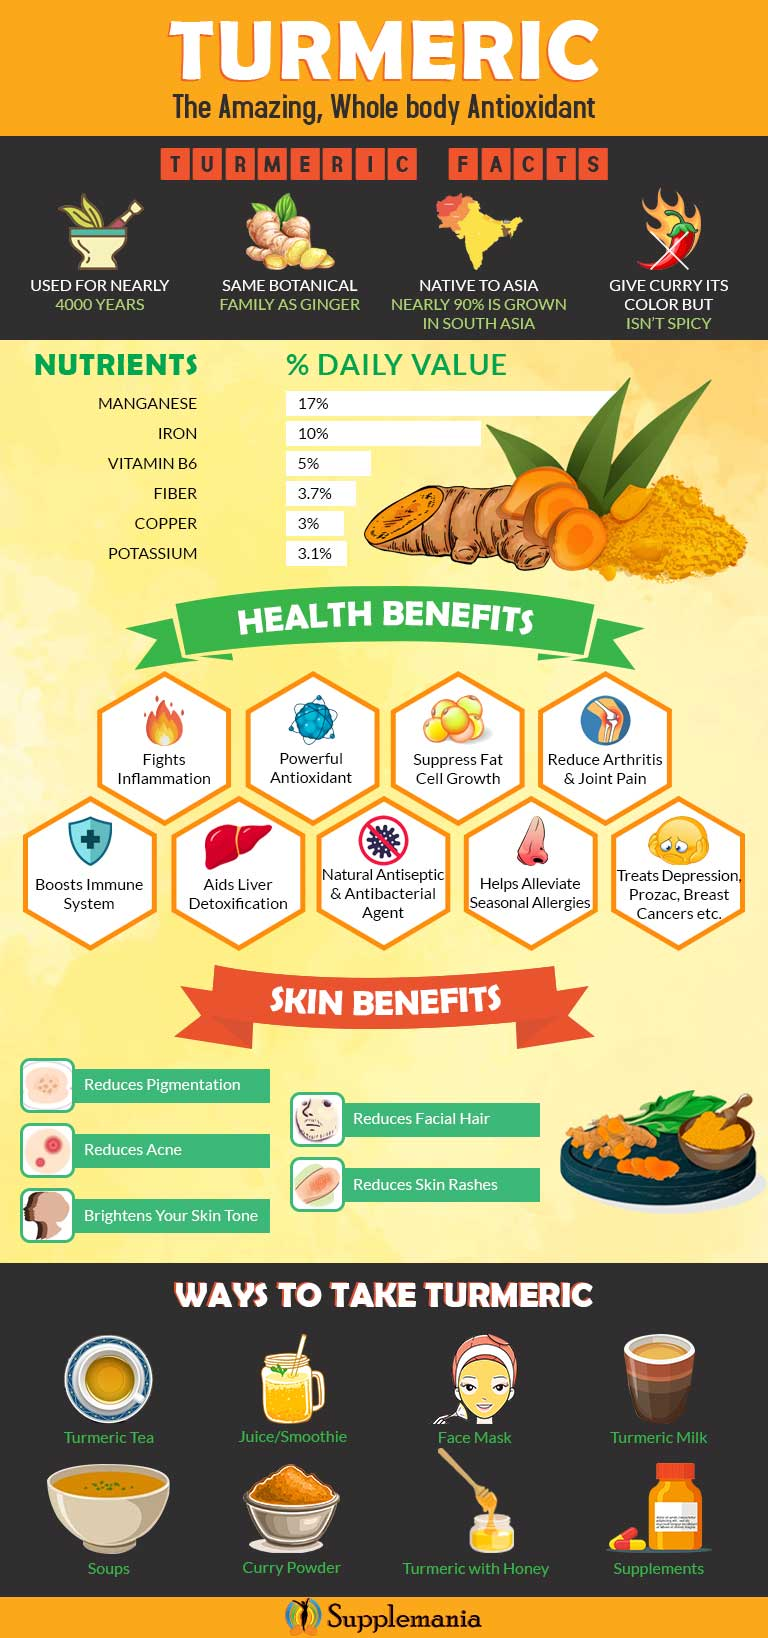 Turmeric Facts & Benefits